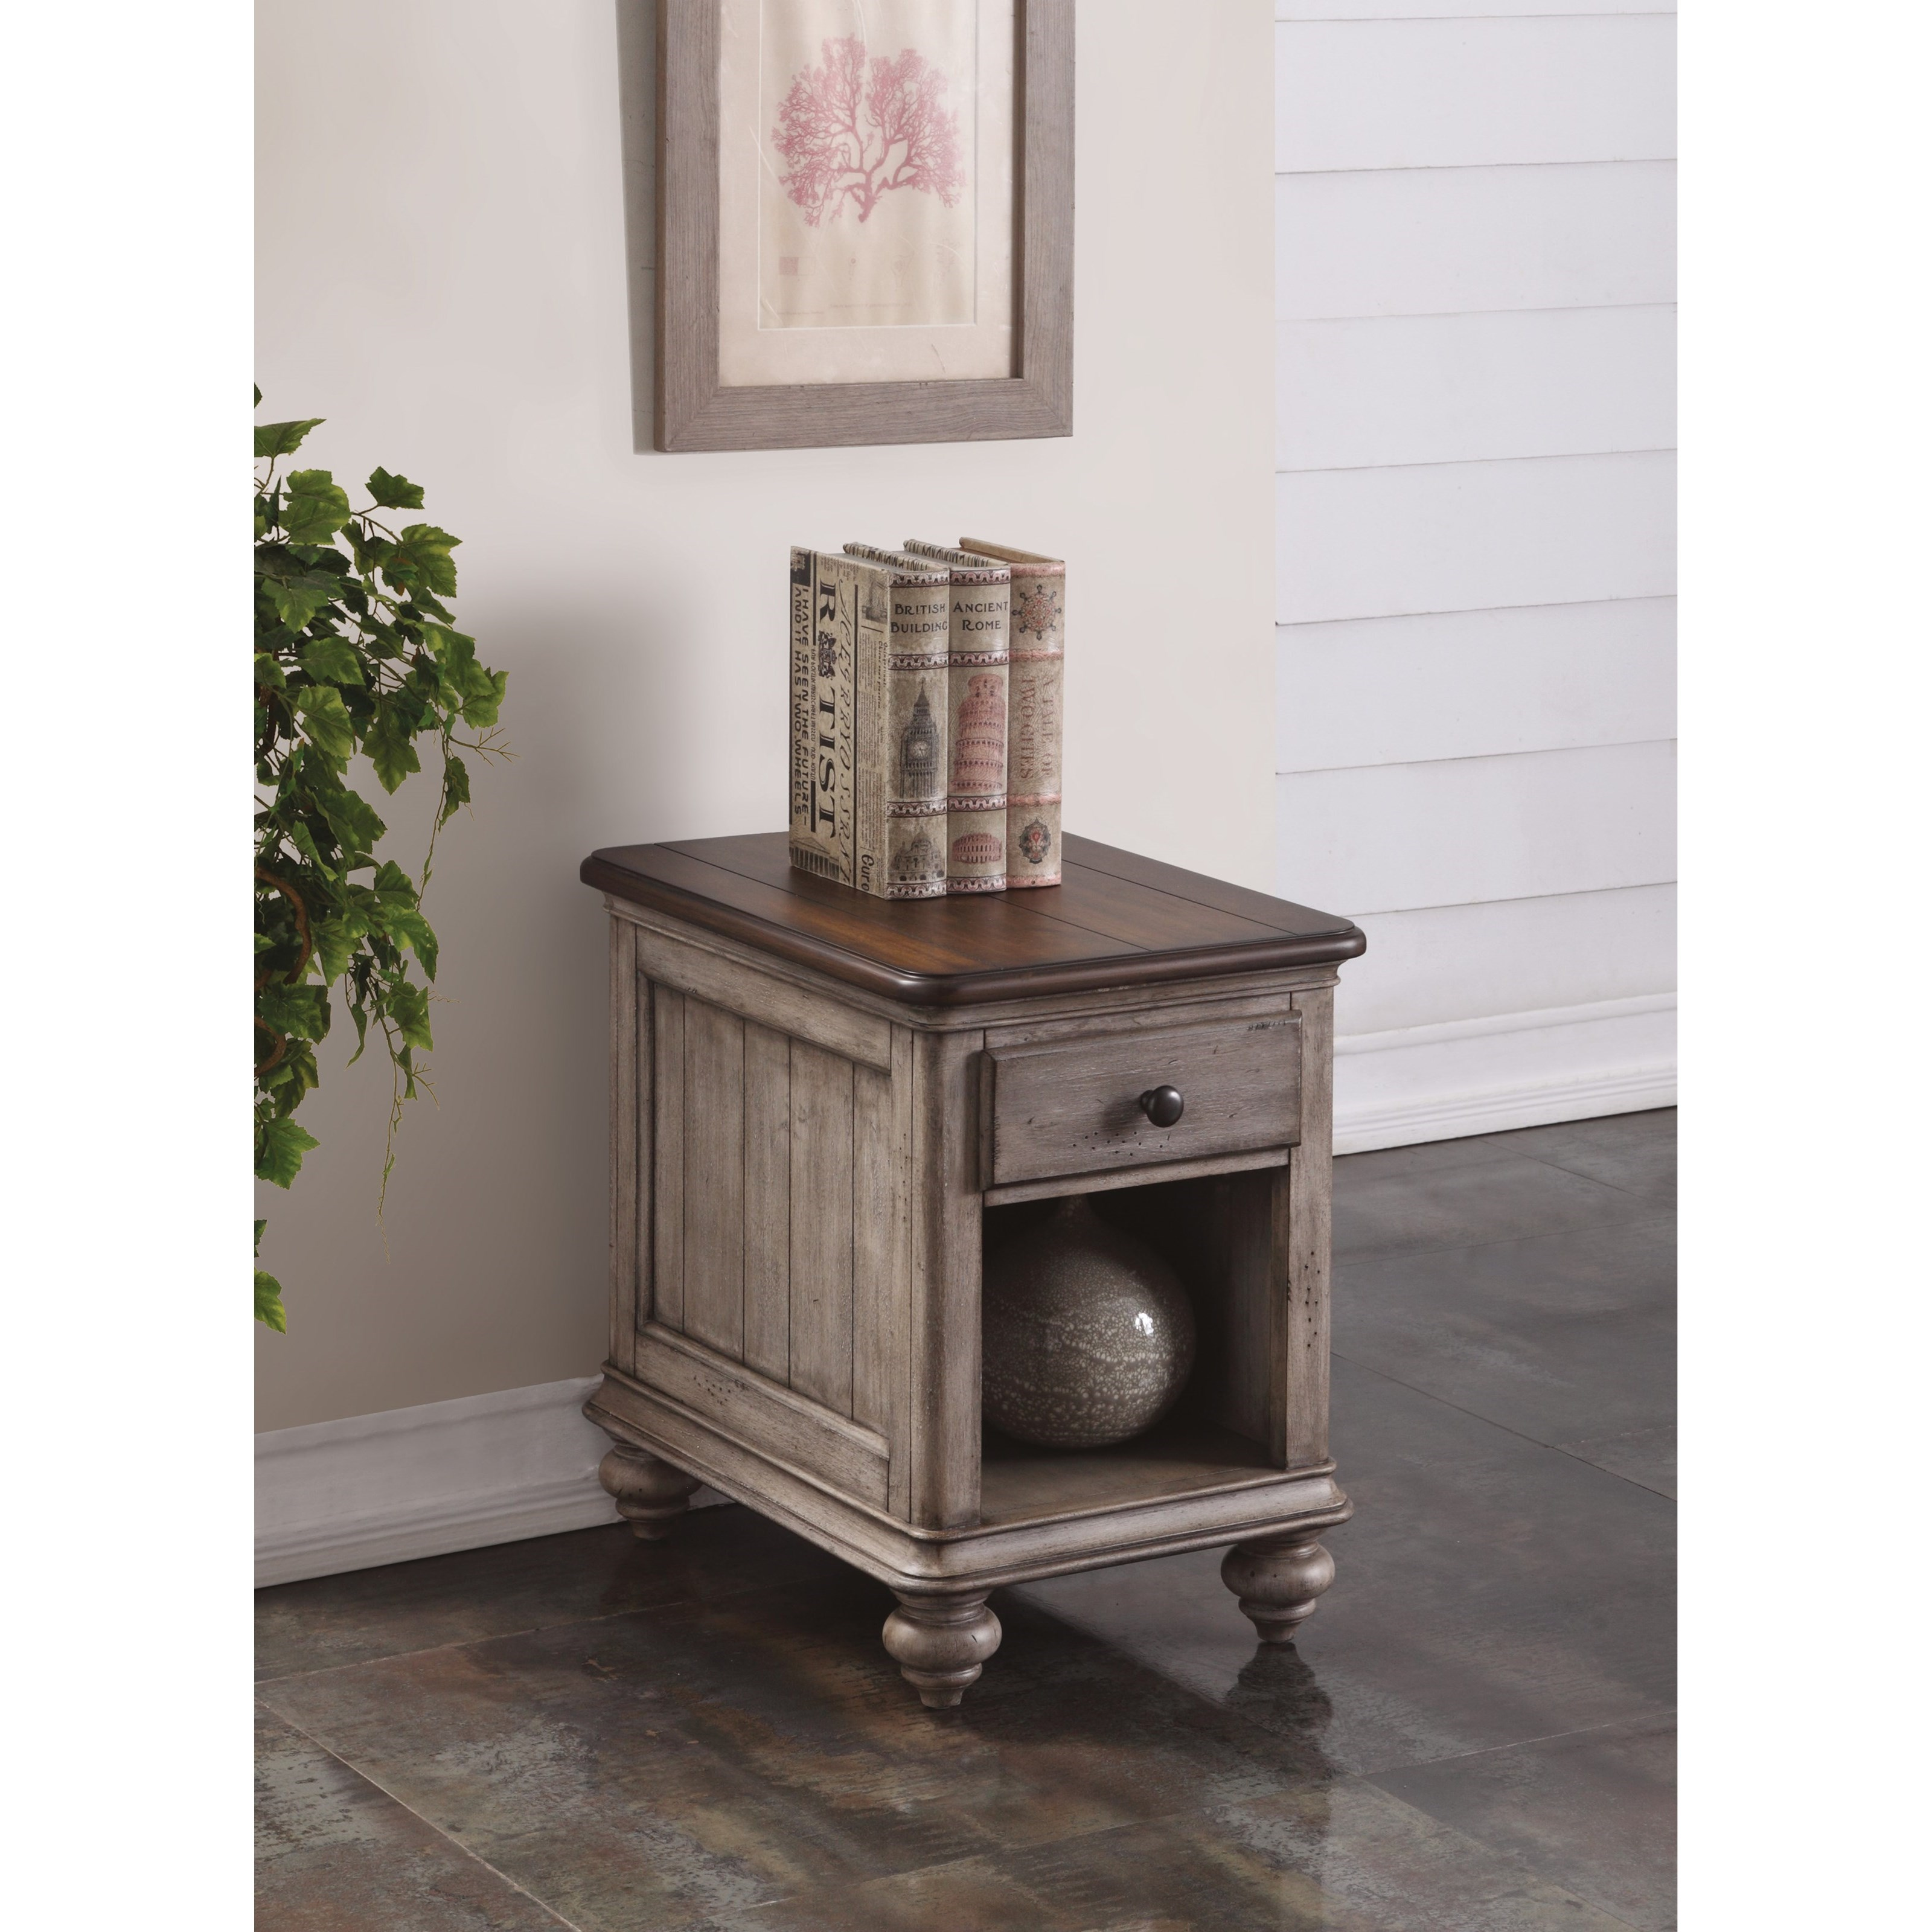 Flexsteel Wynwood Collection Plymouth Cottage Chairside Table With Open Storage Compartment